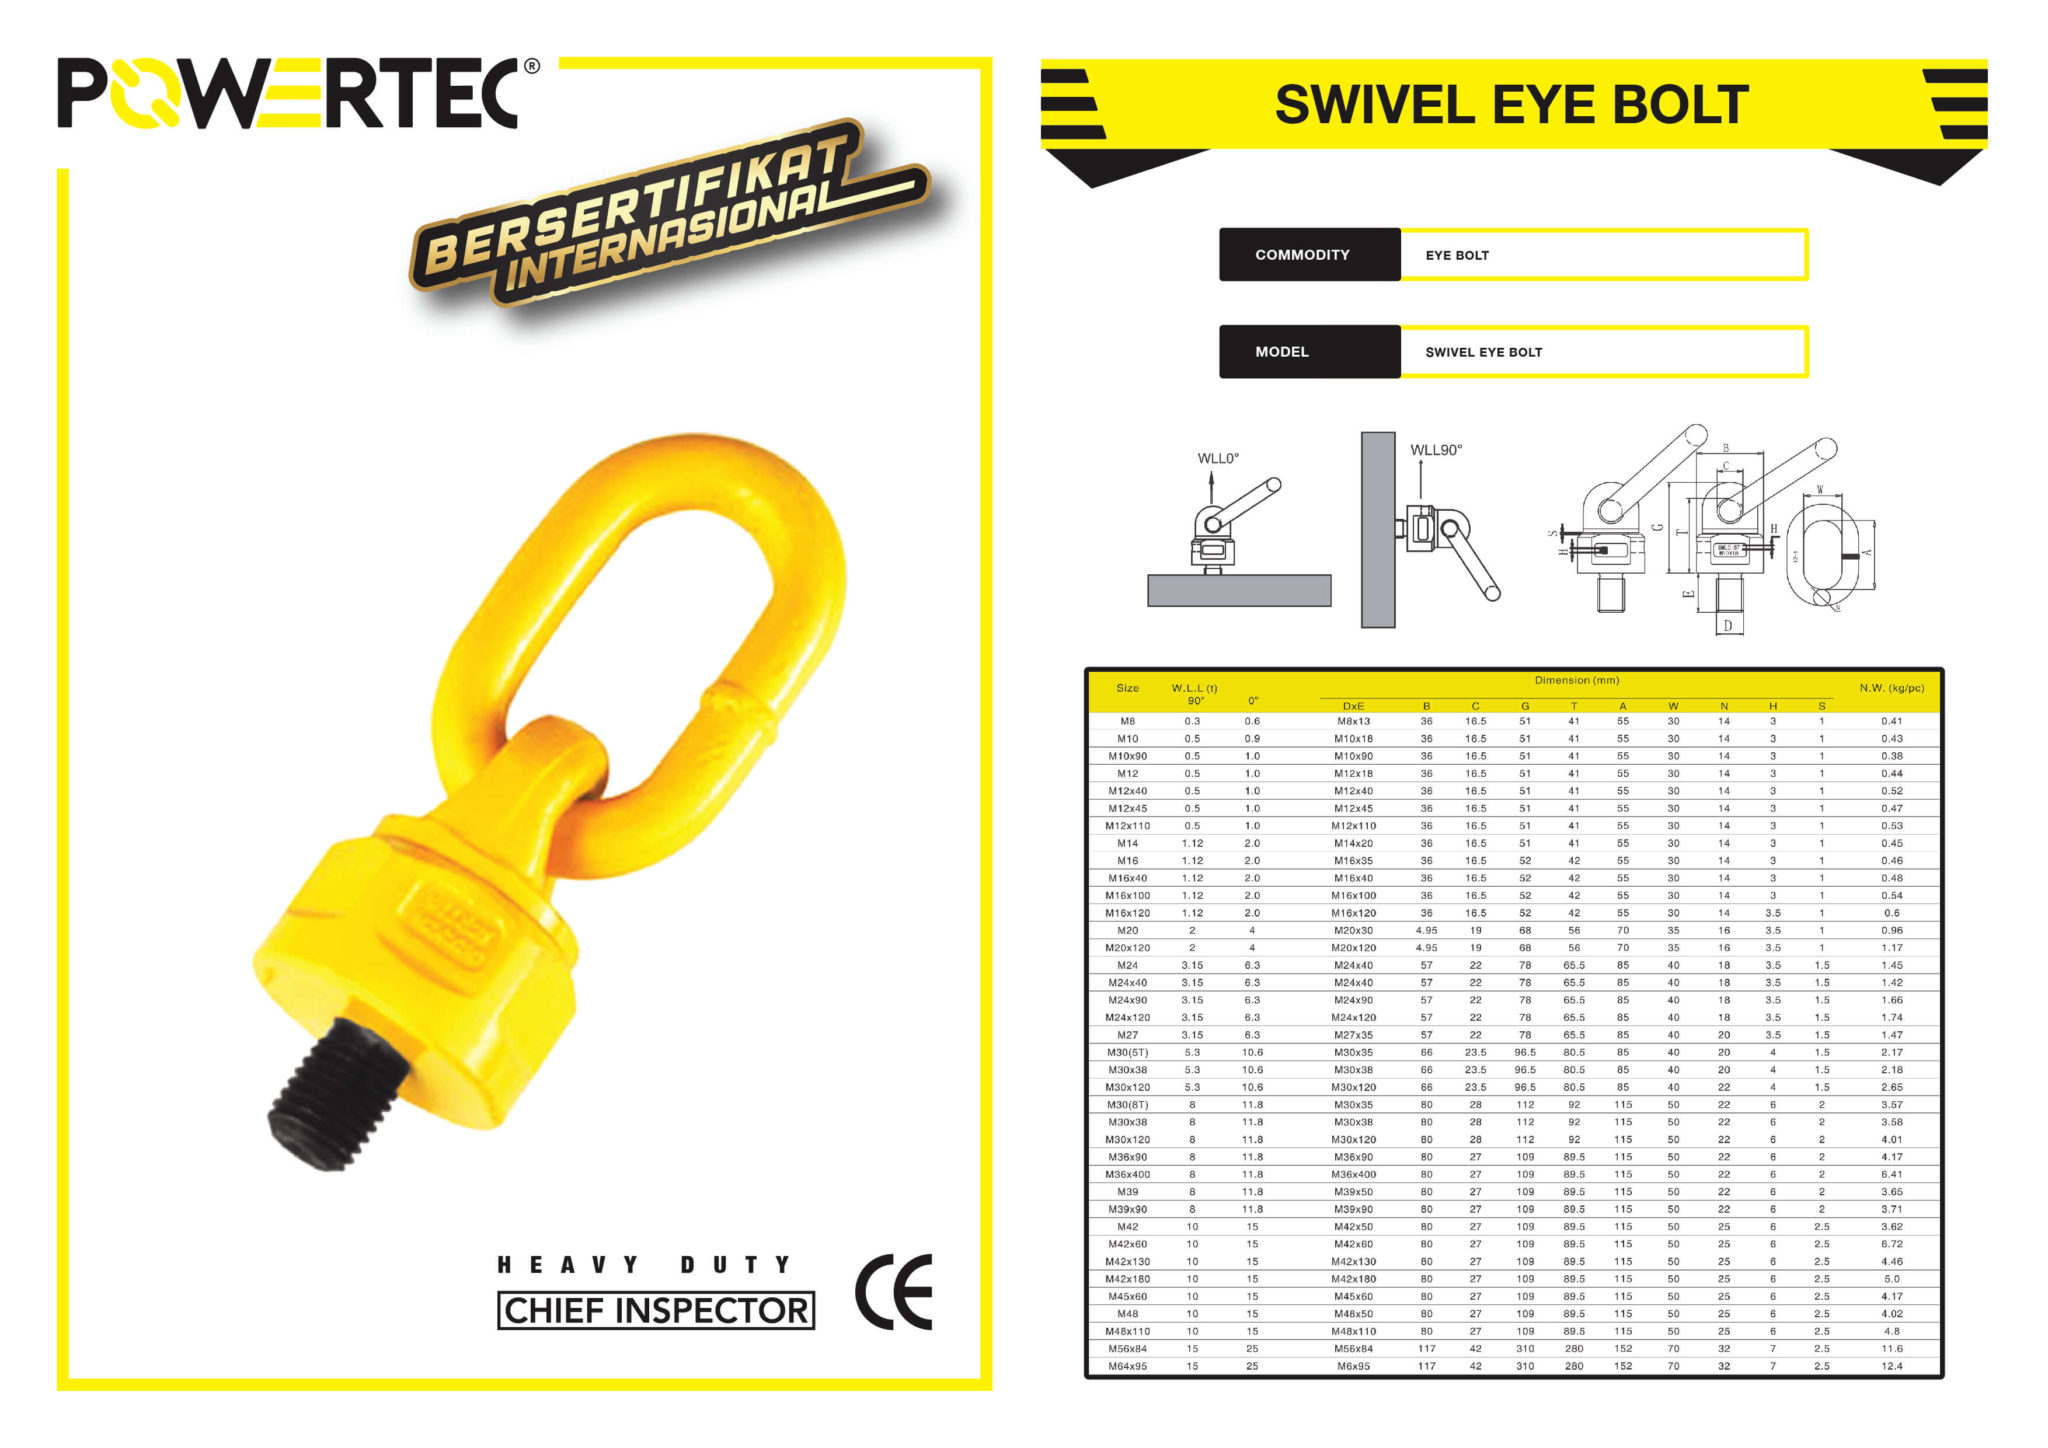 POWERTEC SWIVEL EYE BOLT BROCHURE